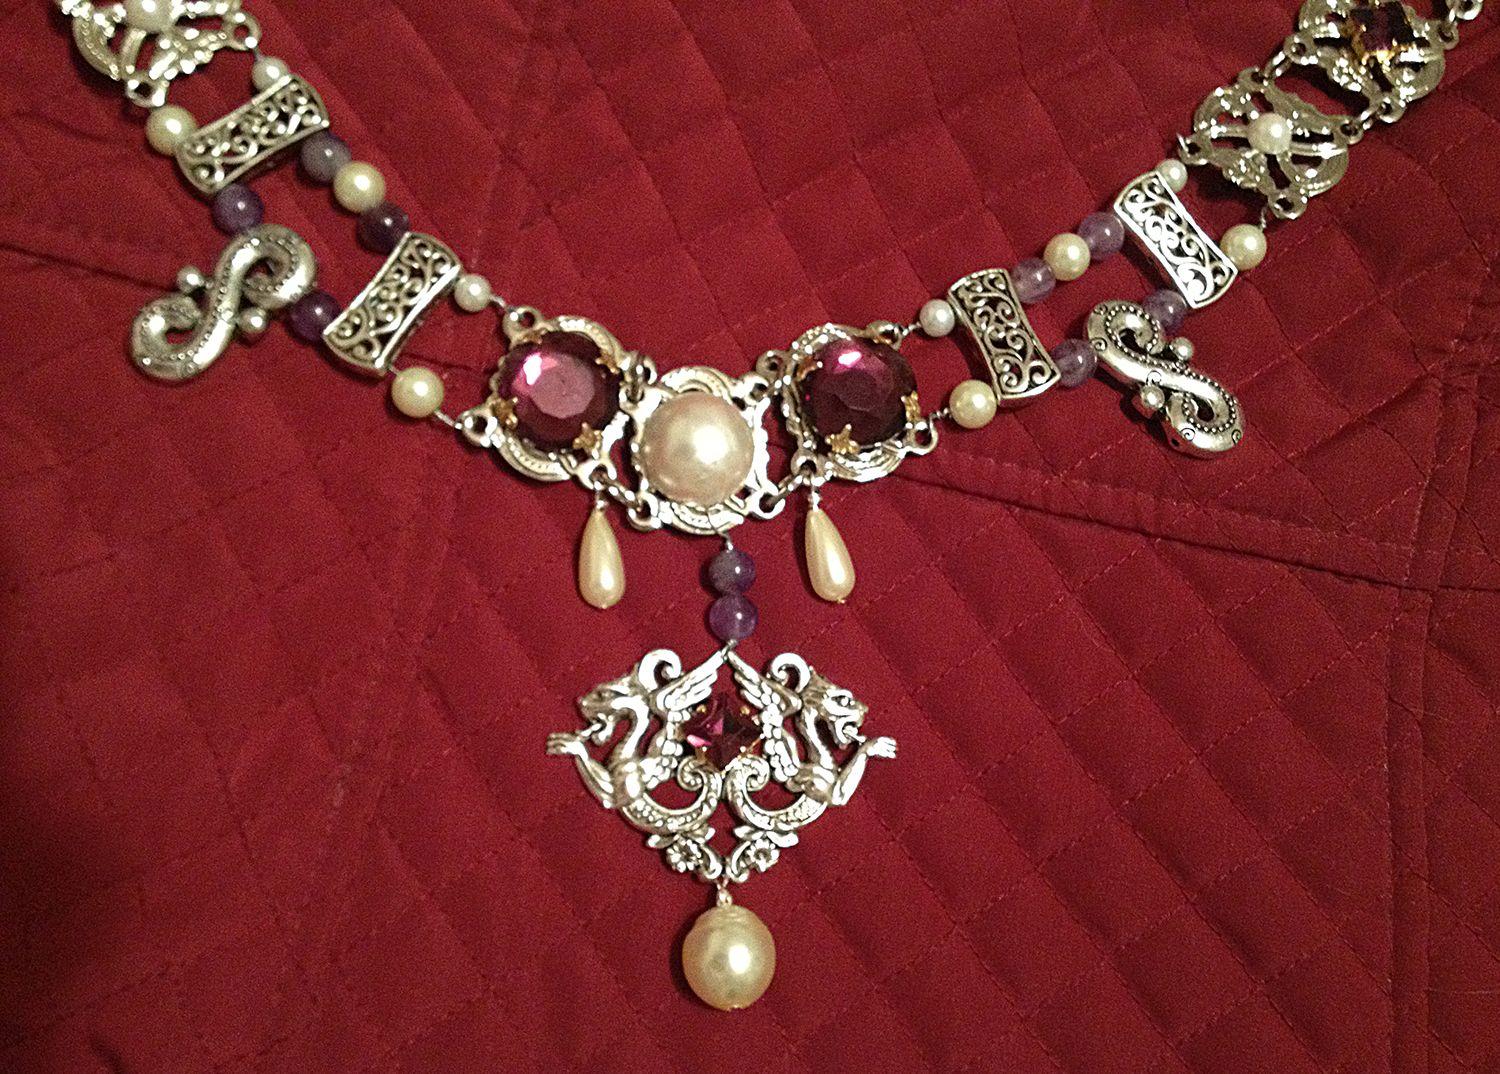 Renaissance Chain of office or livery collar by Karen Troeh with glass pearls, genuine amythest beads, purple rhinestones, filigree, scrollwork and dragons. This was a custom piece. Contact me at my Etsy shop for more chains of office or to order a unique one for yourself!